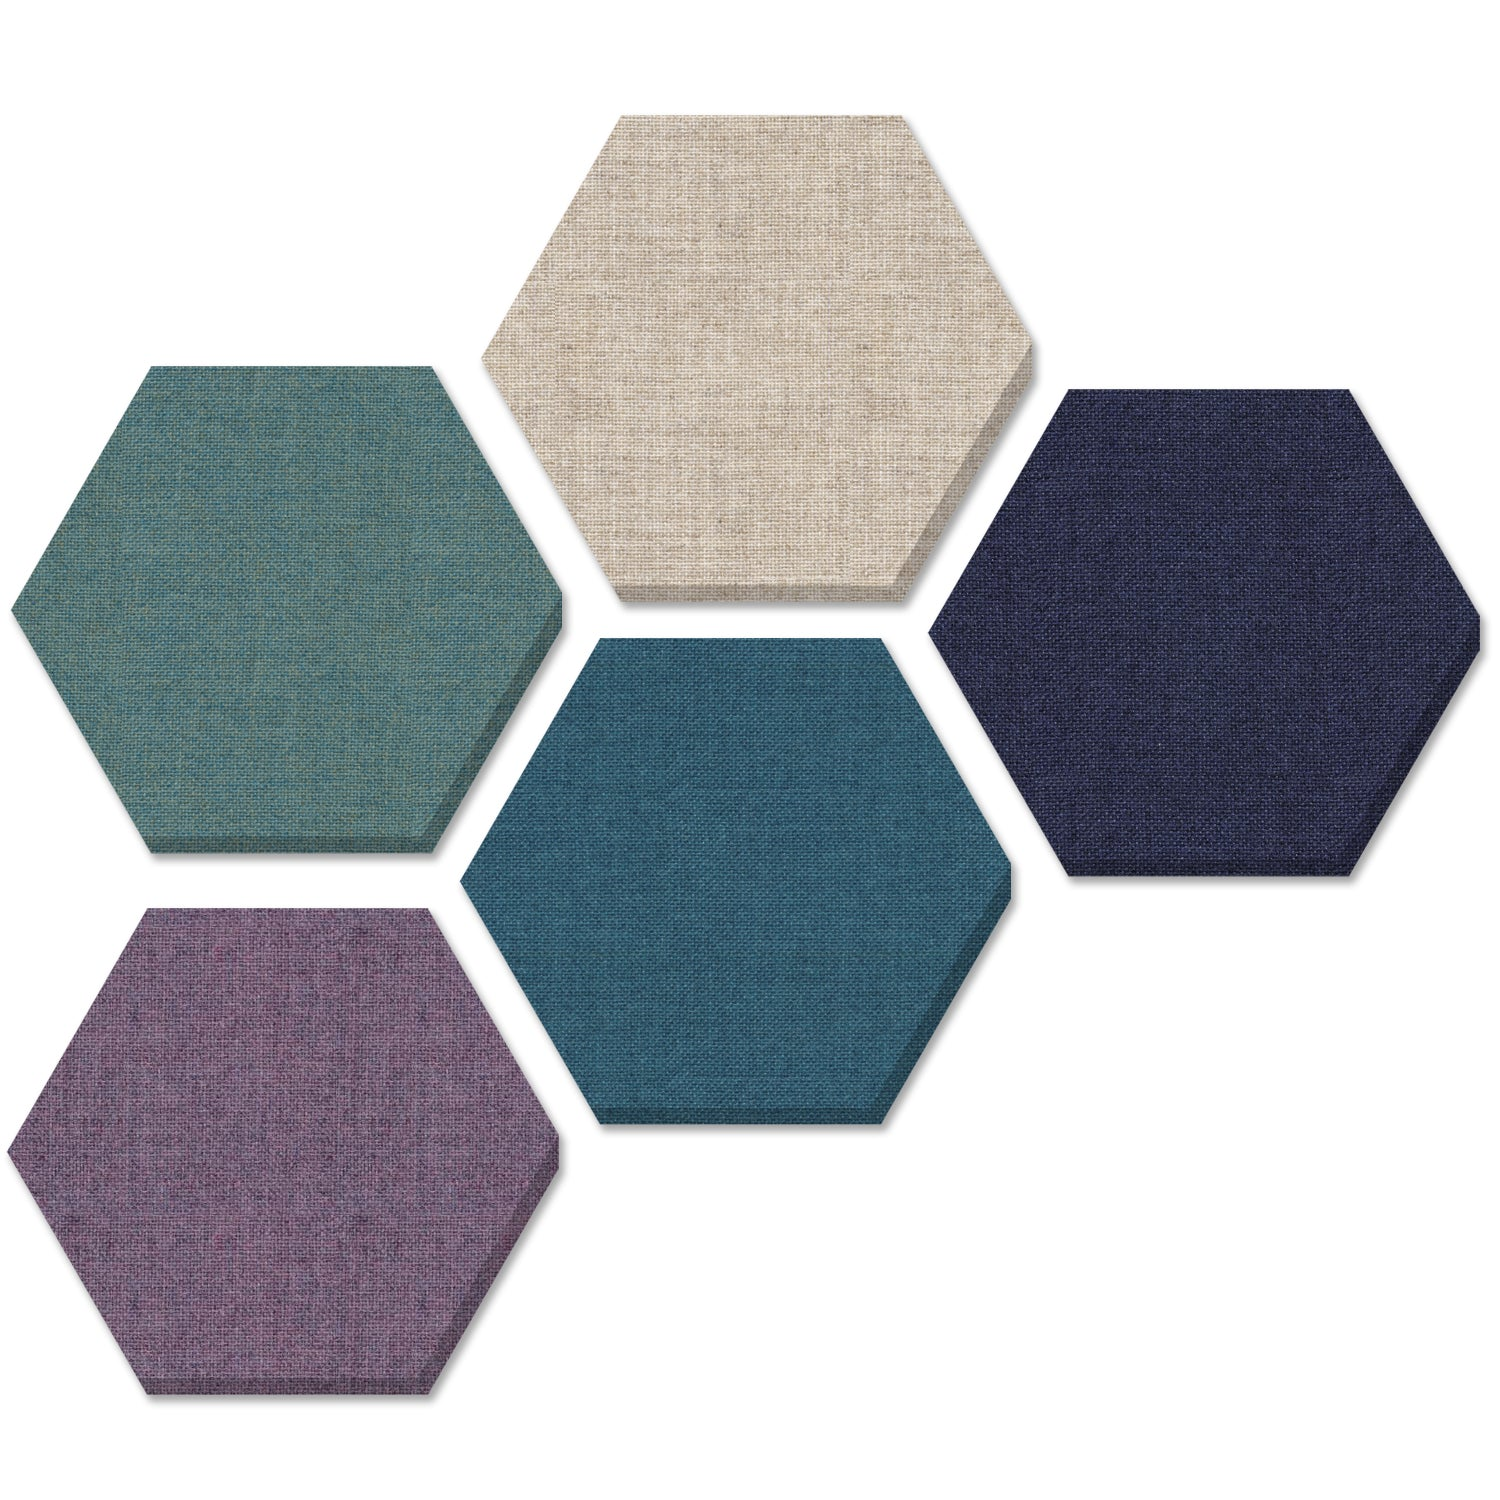 "ADW Acoustic Panel Hexagon Kit - 5 pieces 24""x24""x1"""